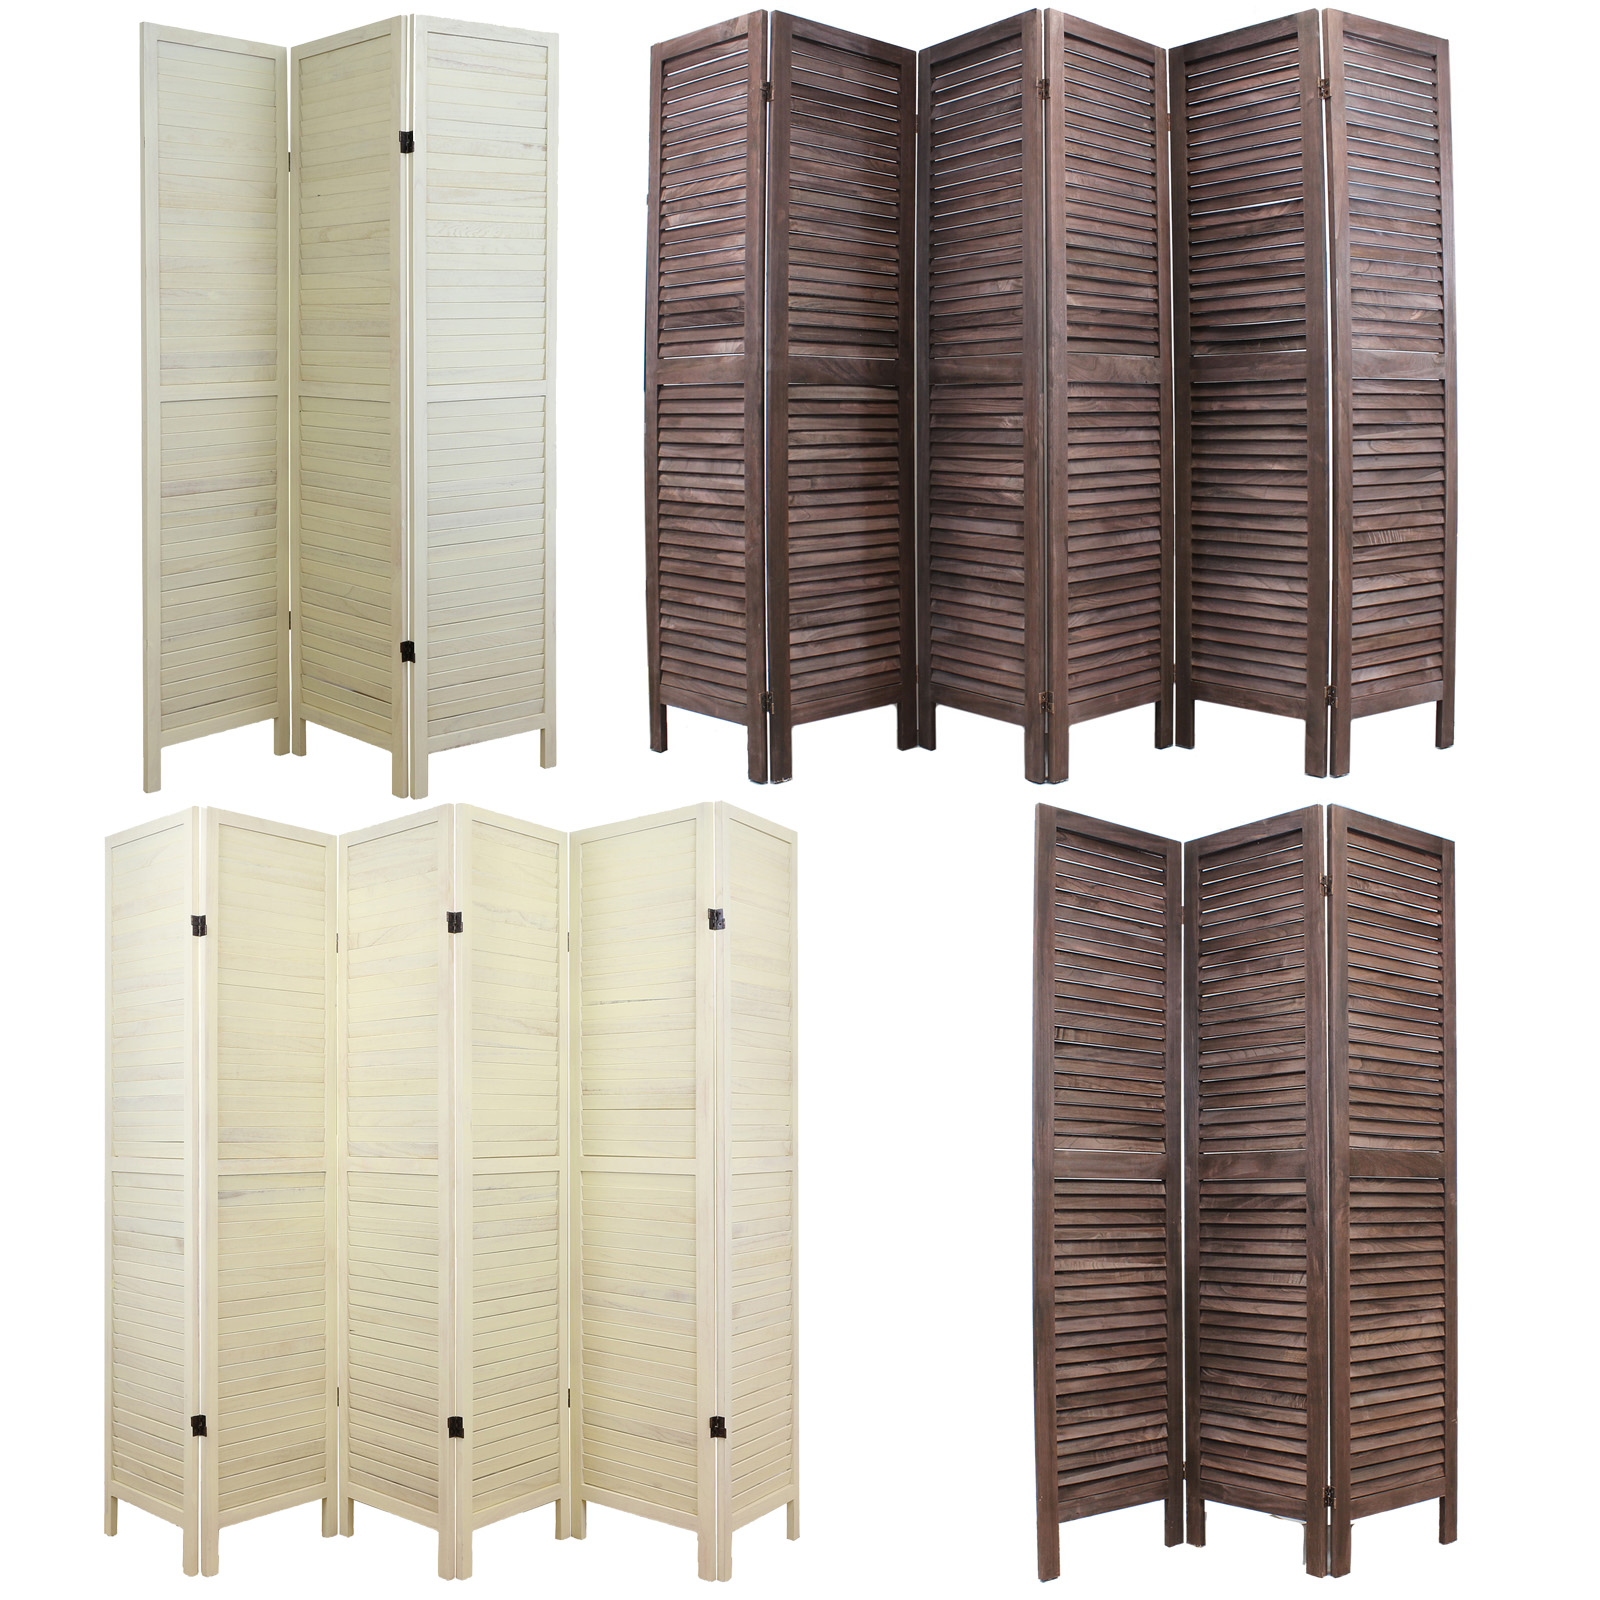 Partition Divider wooden slat room divider privacy screen/partition/blind wide